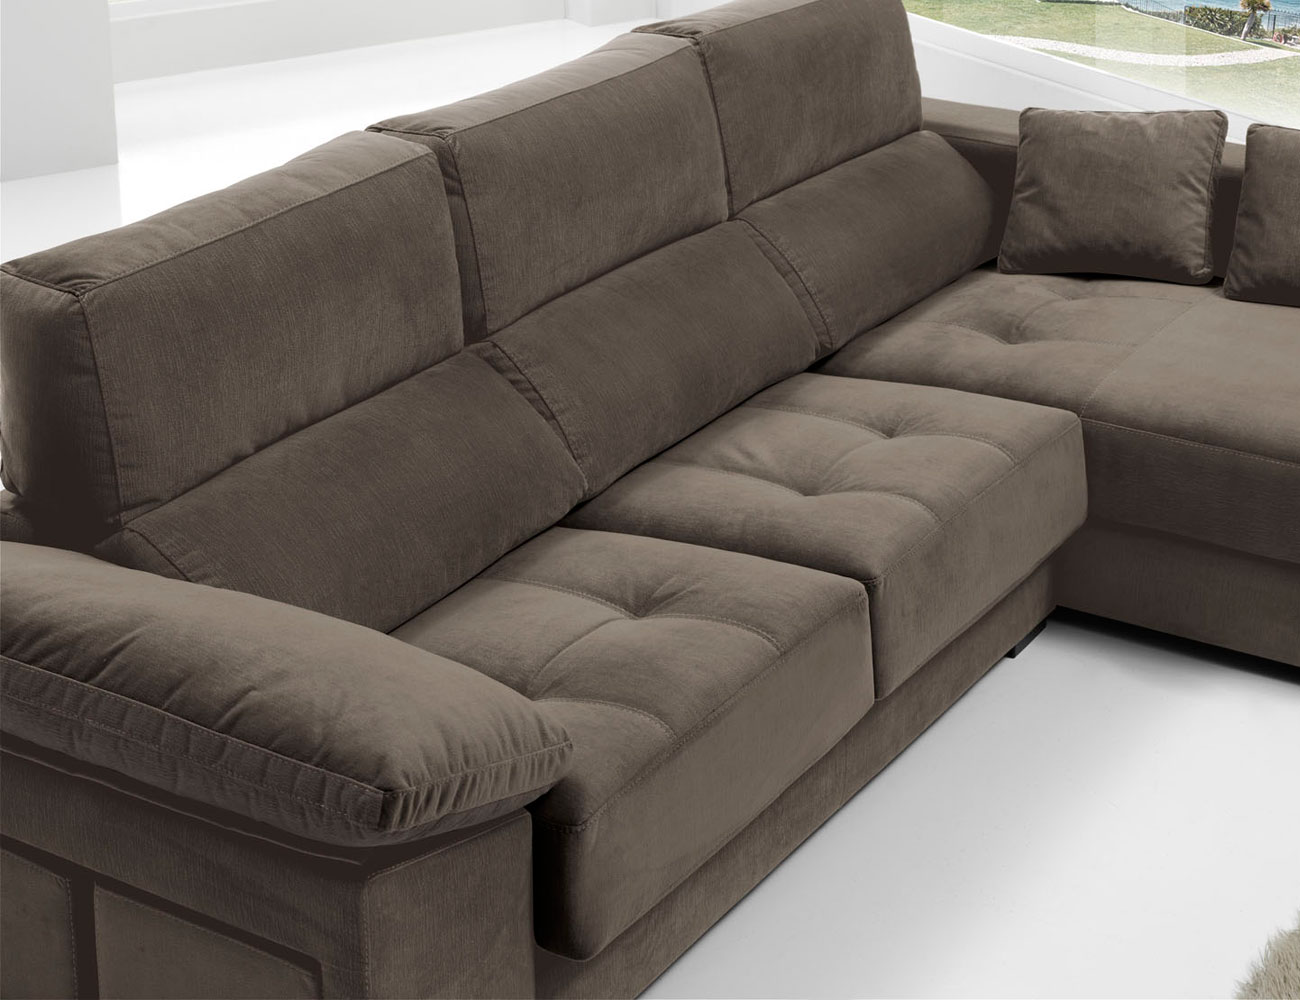 Sofa chaiselongue anti manchas bering pouf 258